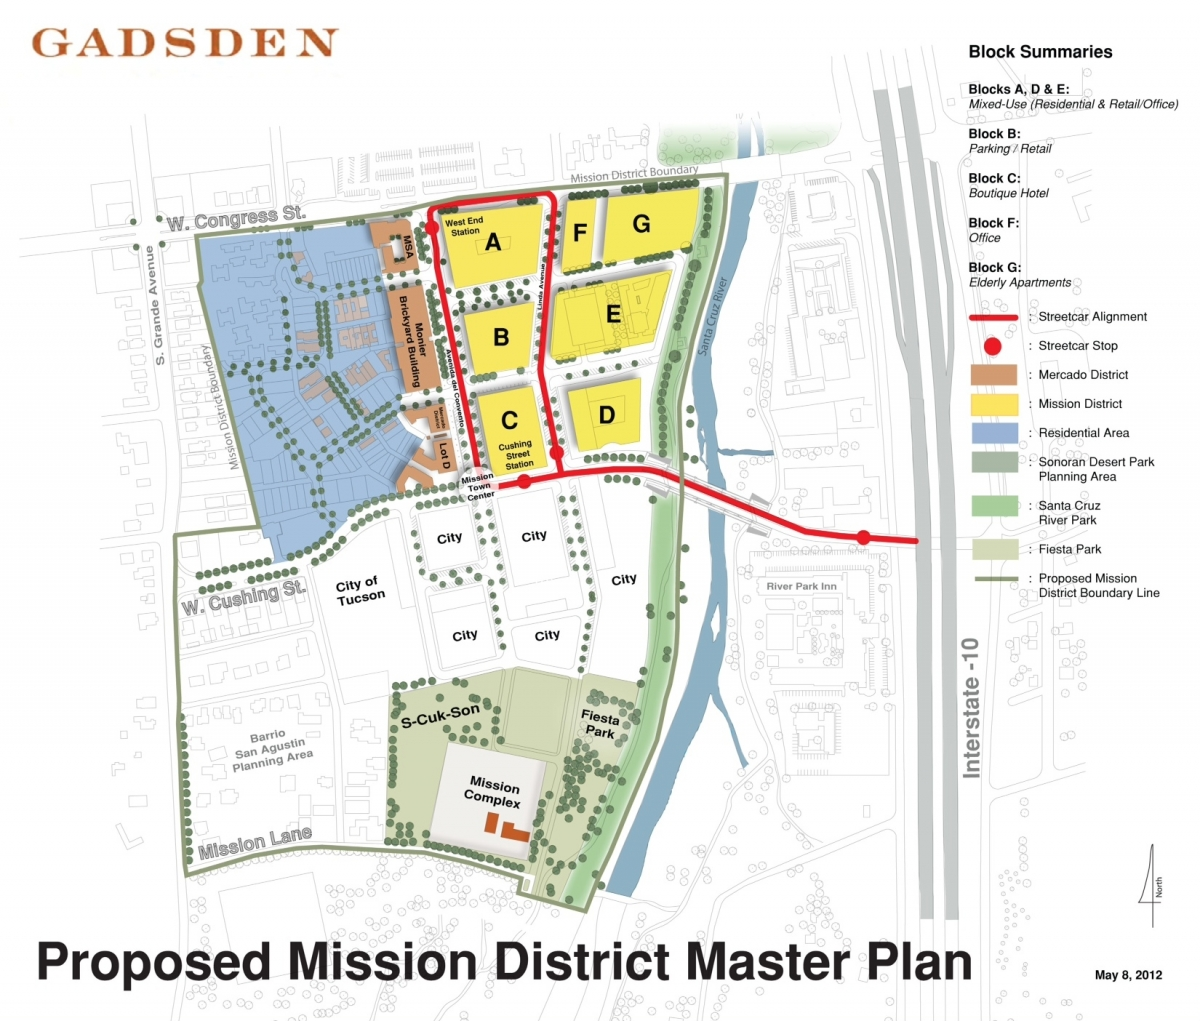 What is the status of the downtown properties west of I-10?